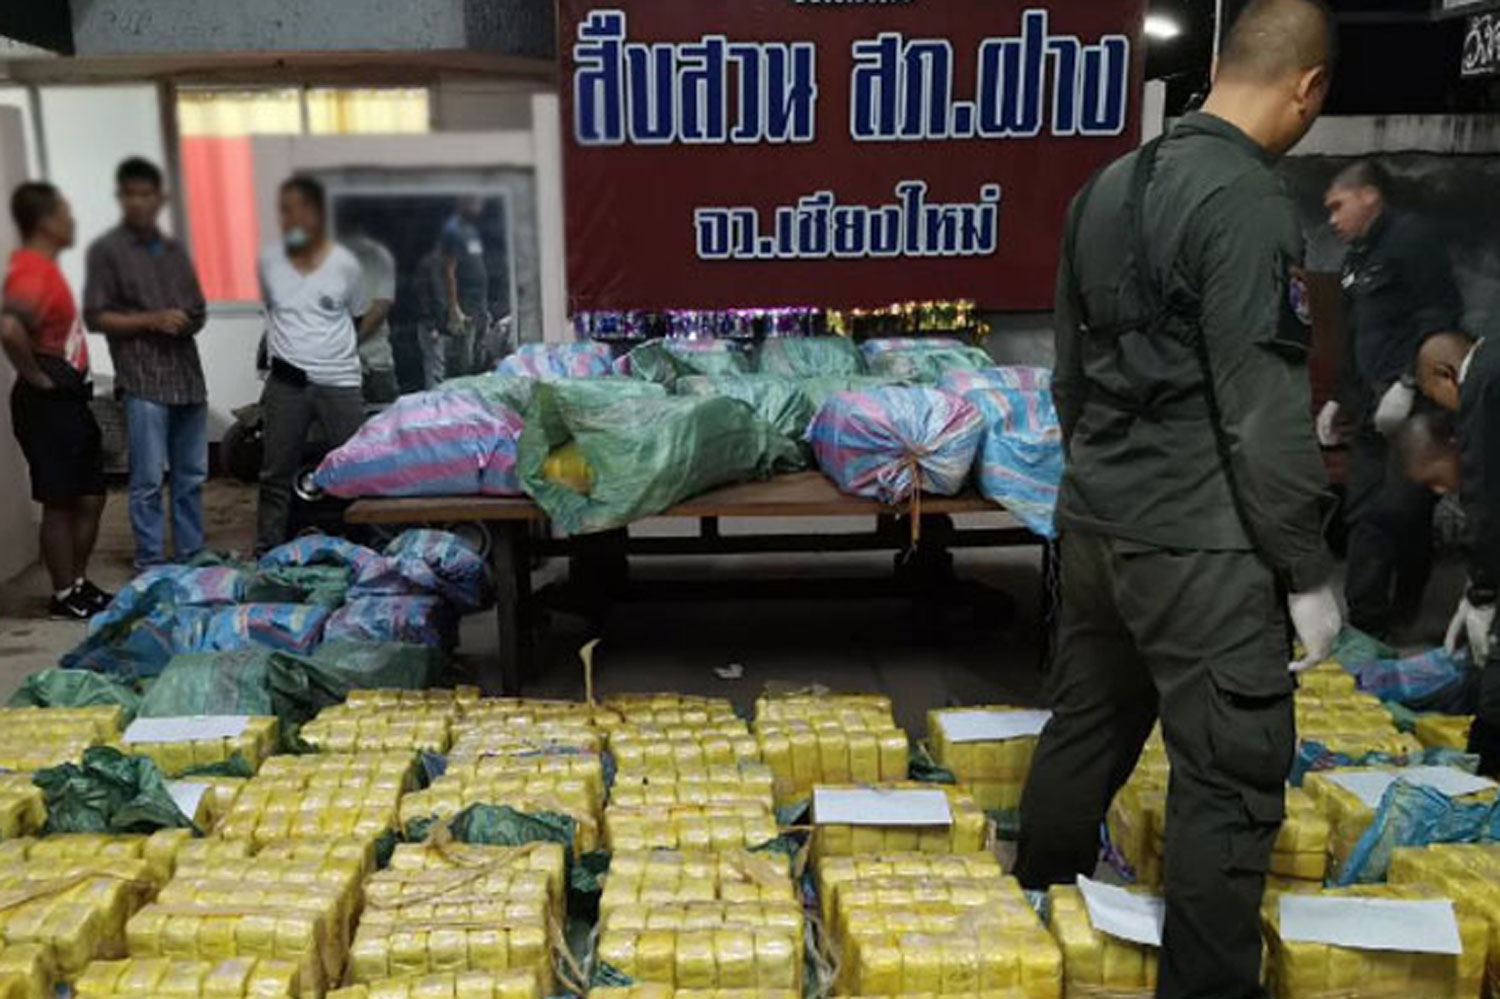 Police display packages containing 14 million speed pills seized from a pickup truck parked at a hotel in Fang district of Chiang Mai in the early hours of Saturday. (Photo: FM91bkk.com)